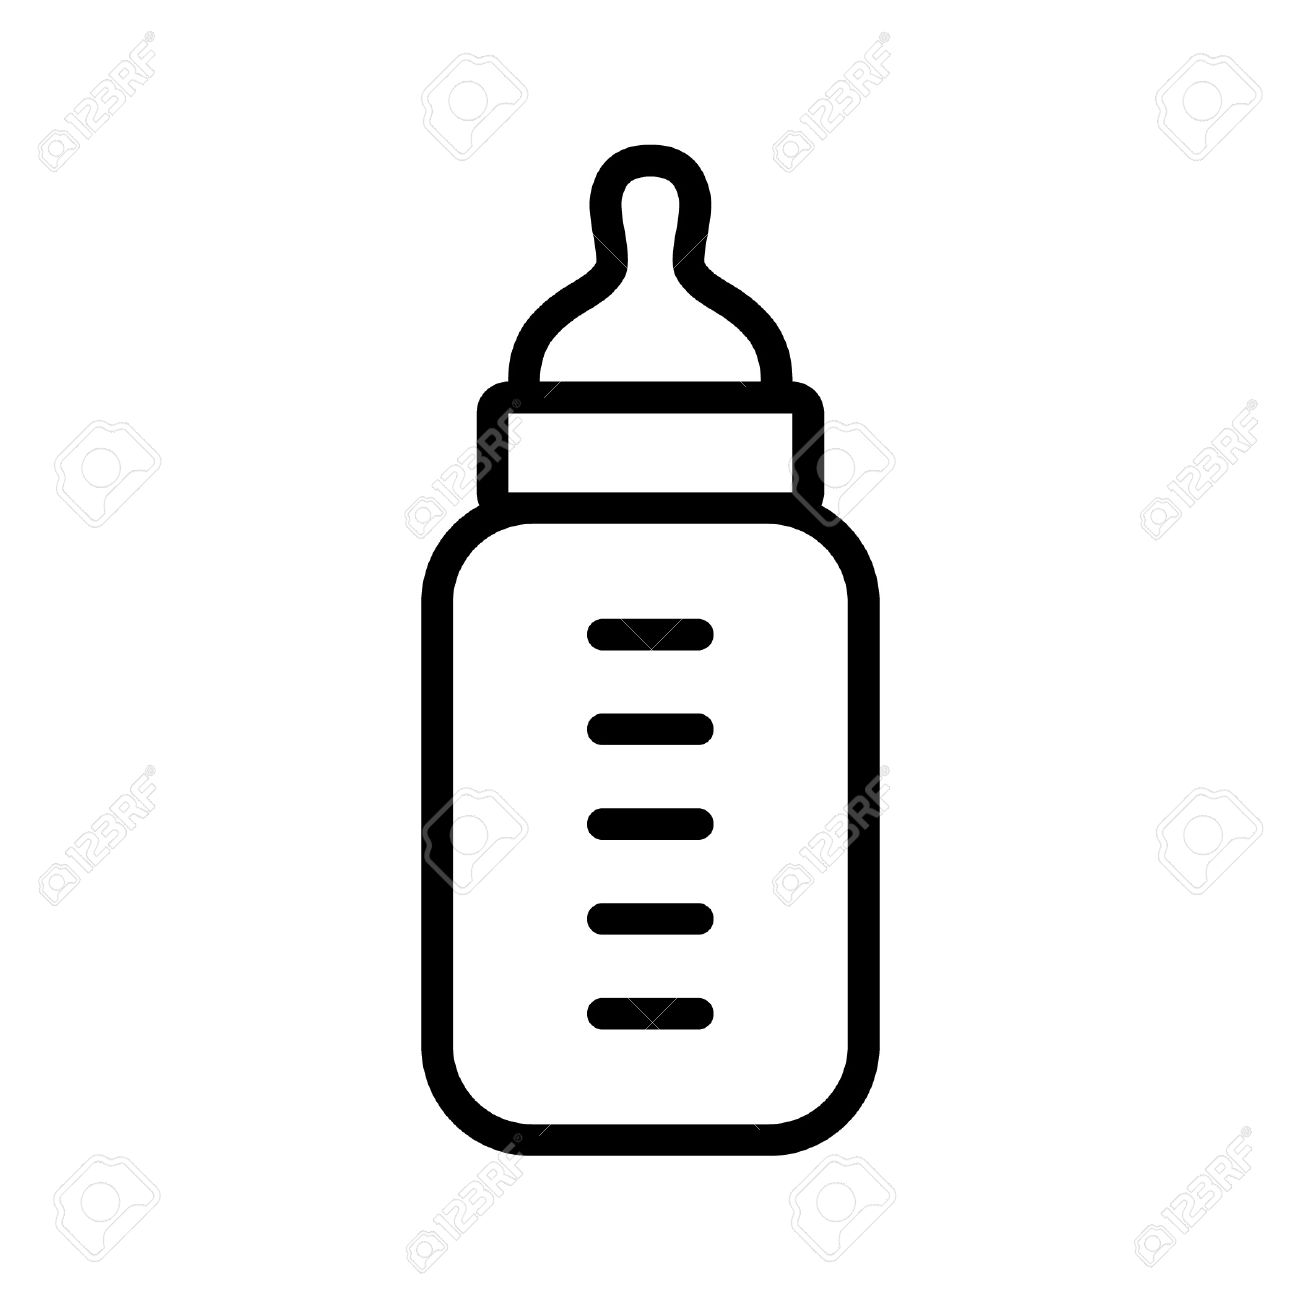 Baby milk bottle line art icon for apps and websites.